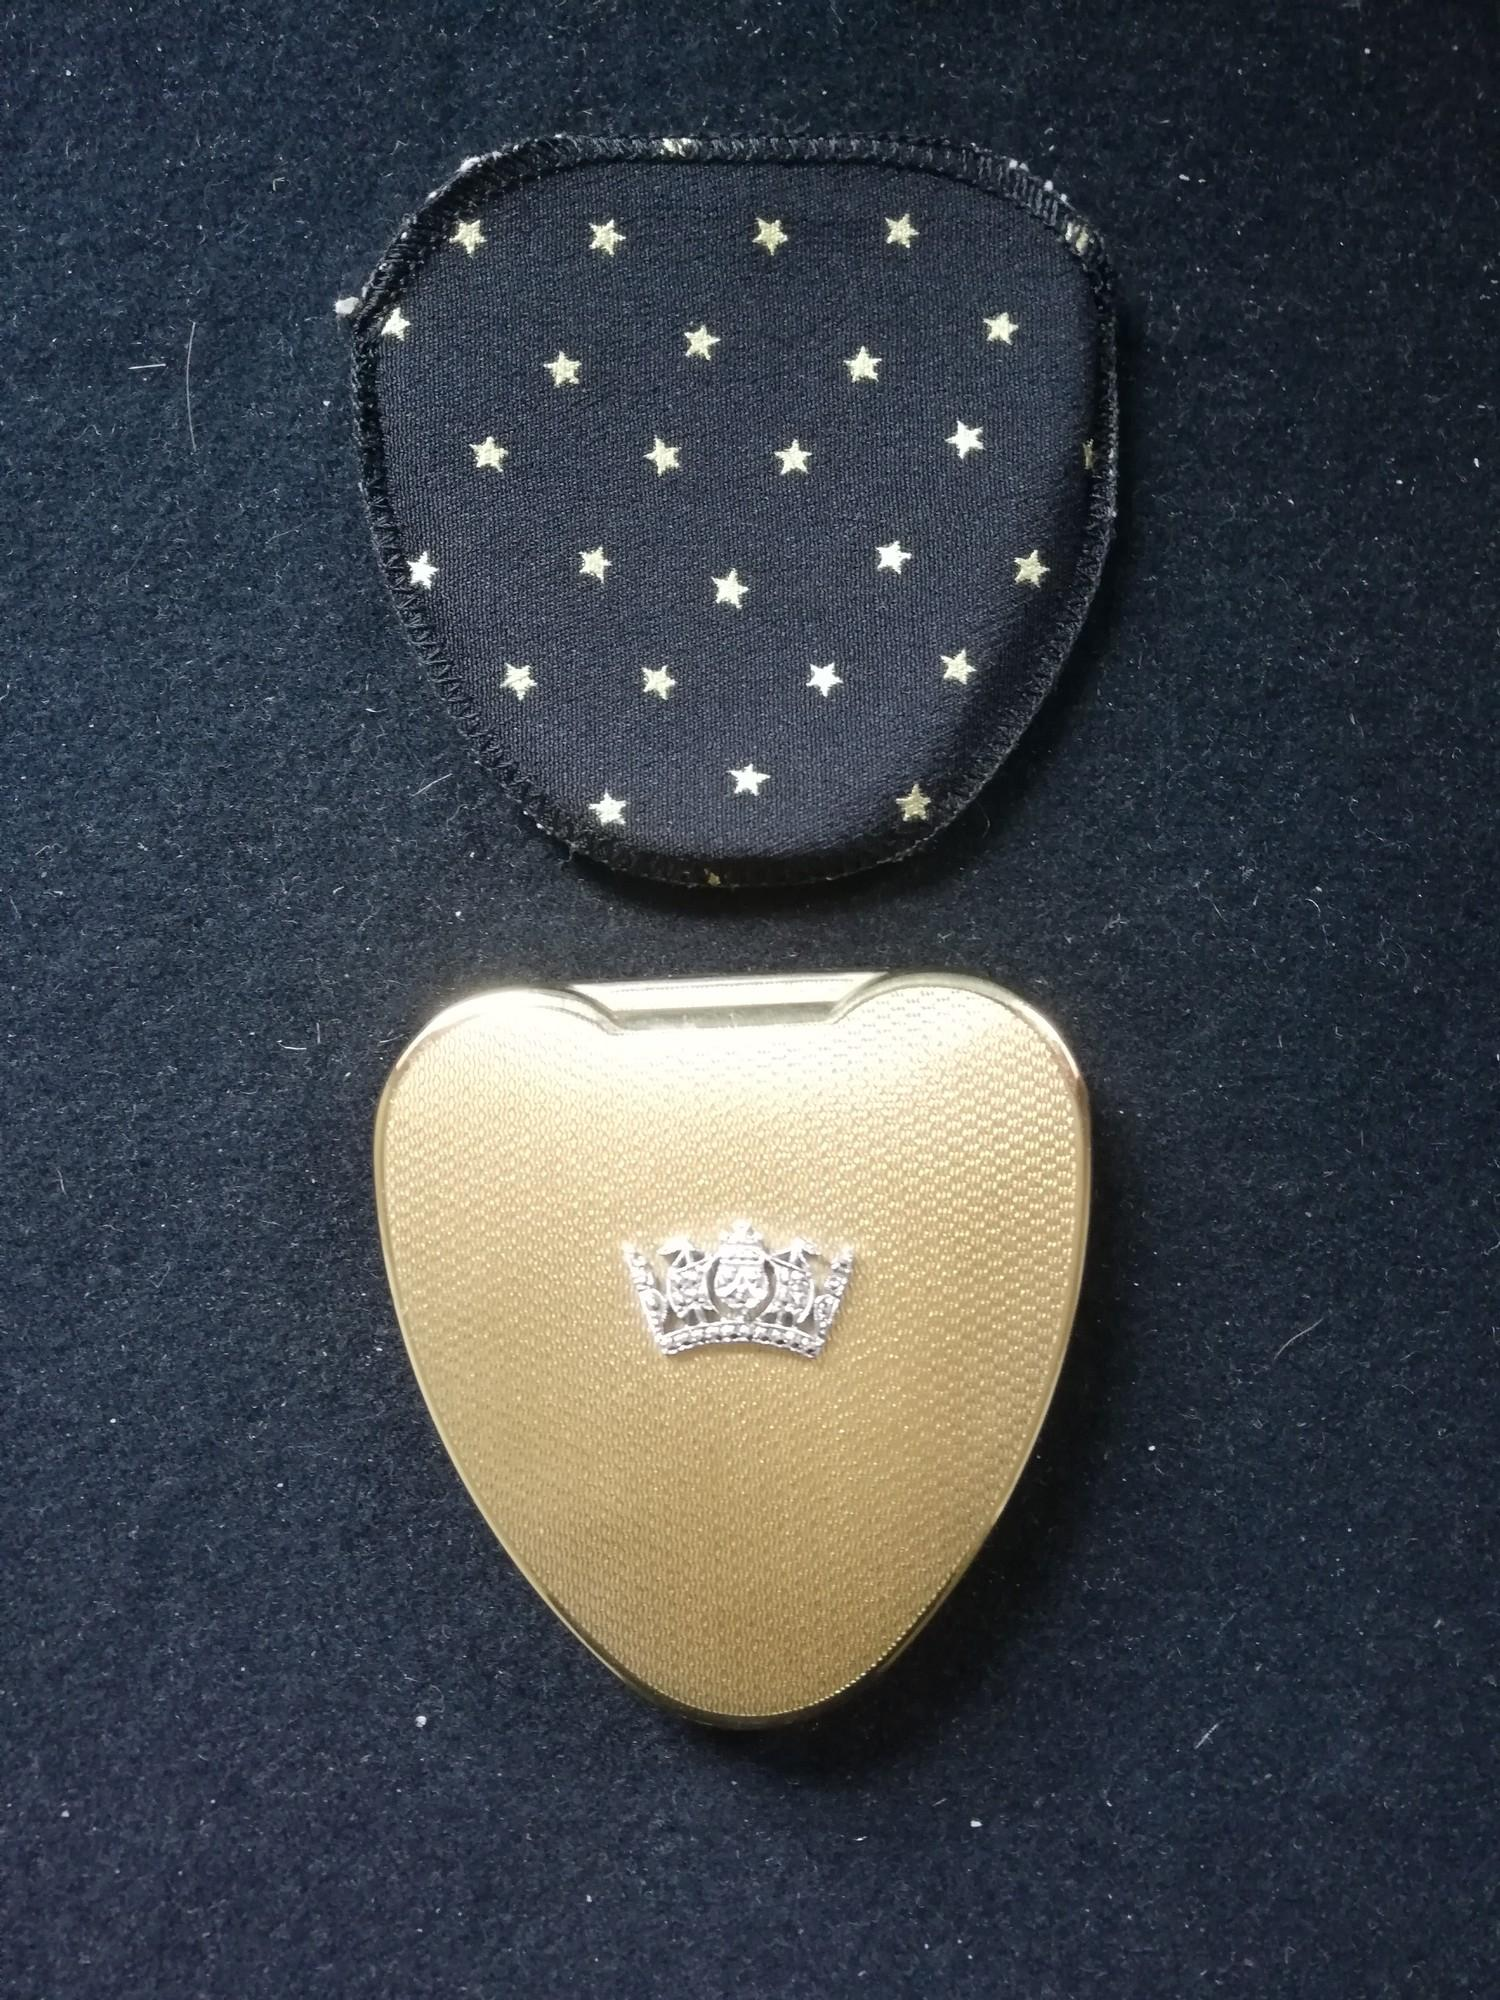 Lot 121 - Kigu Cherie heart shaped compact with naval crown embellishment & fabric sleeve